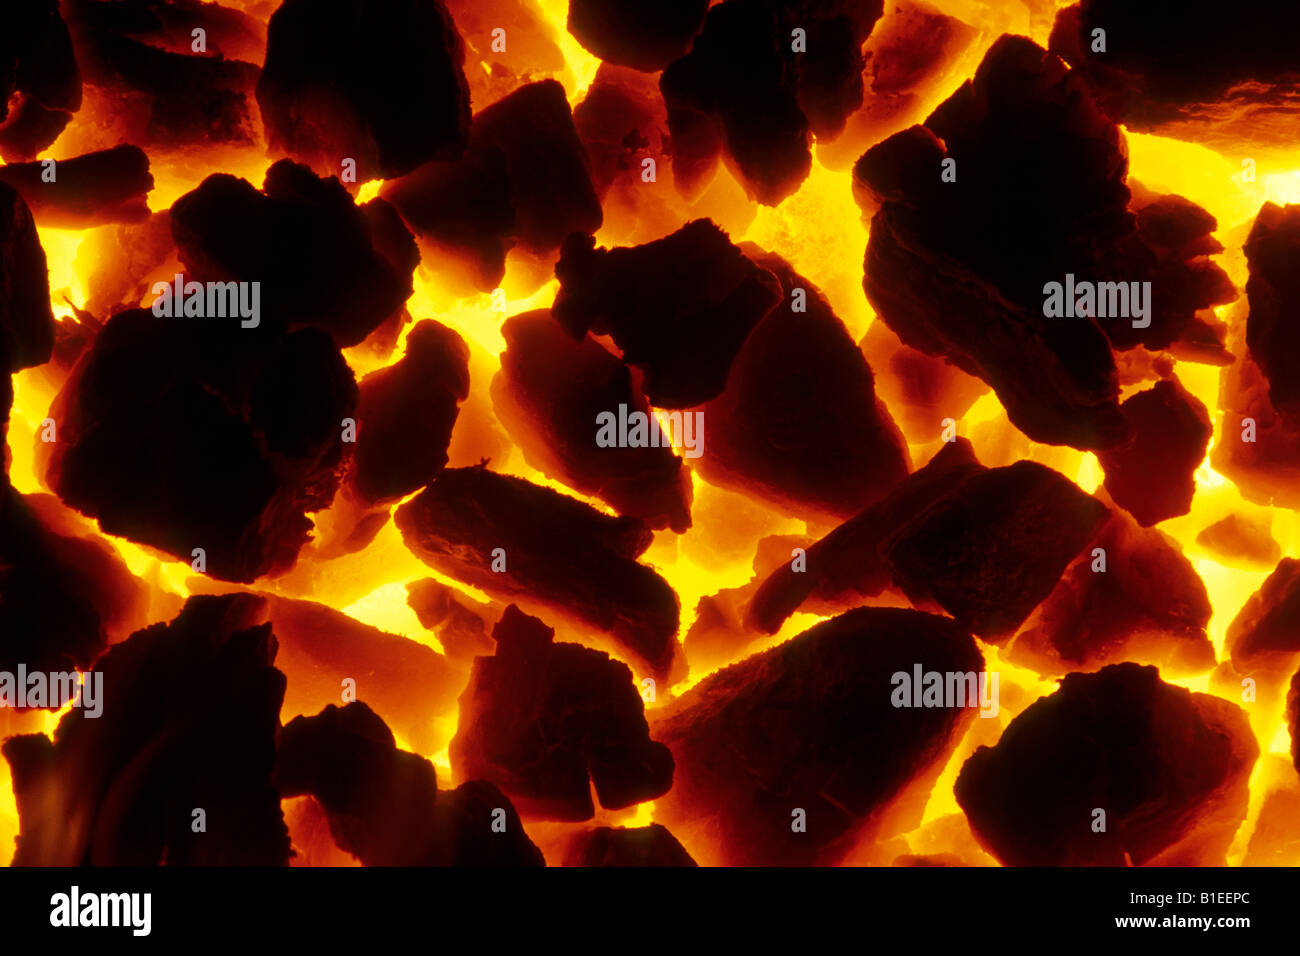 Burning Coal In A Fireplace Stock Photo 18143956 Alamy